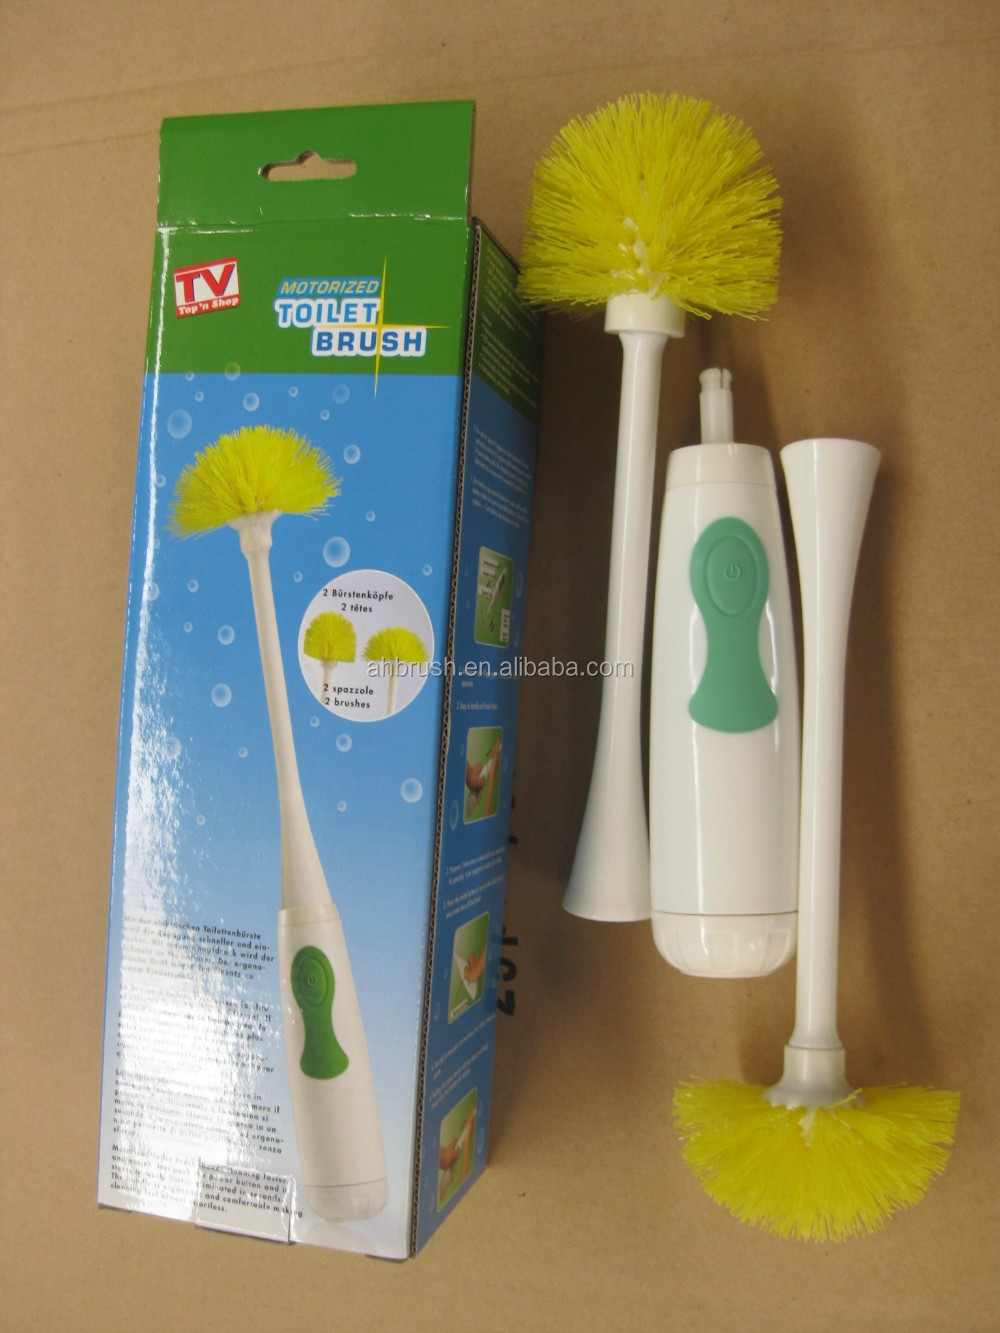 Battery operated electric toilet cleaning brush from china